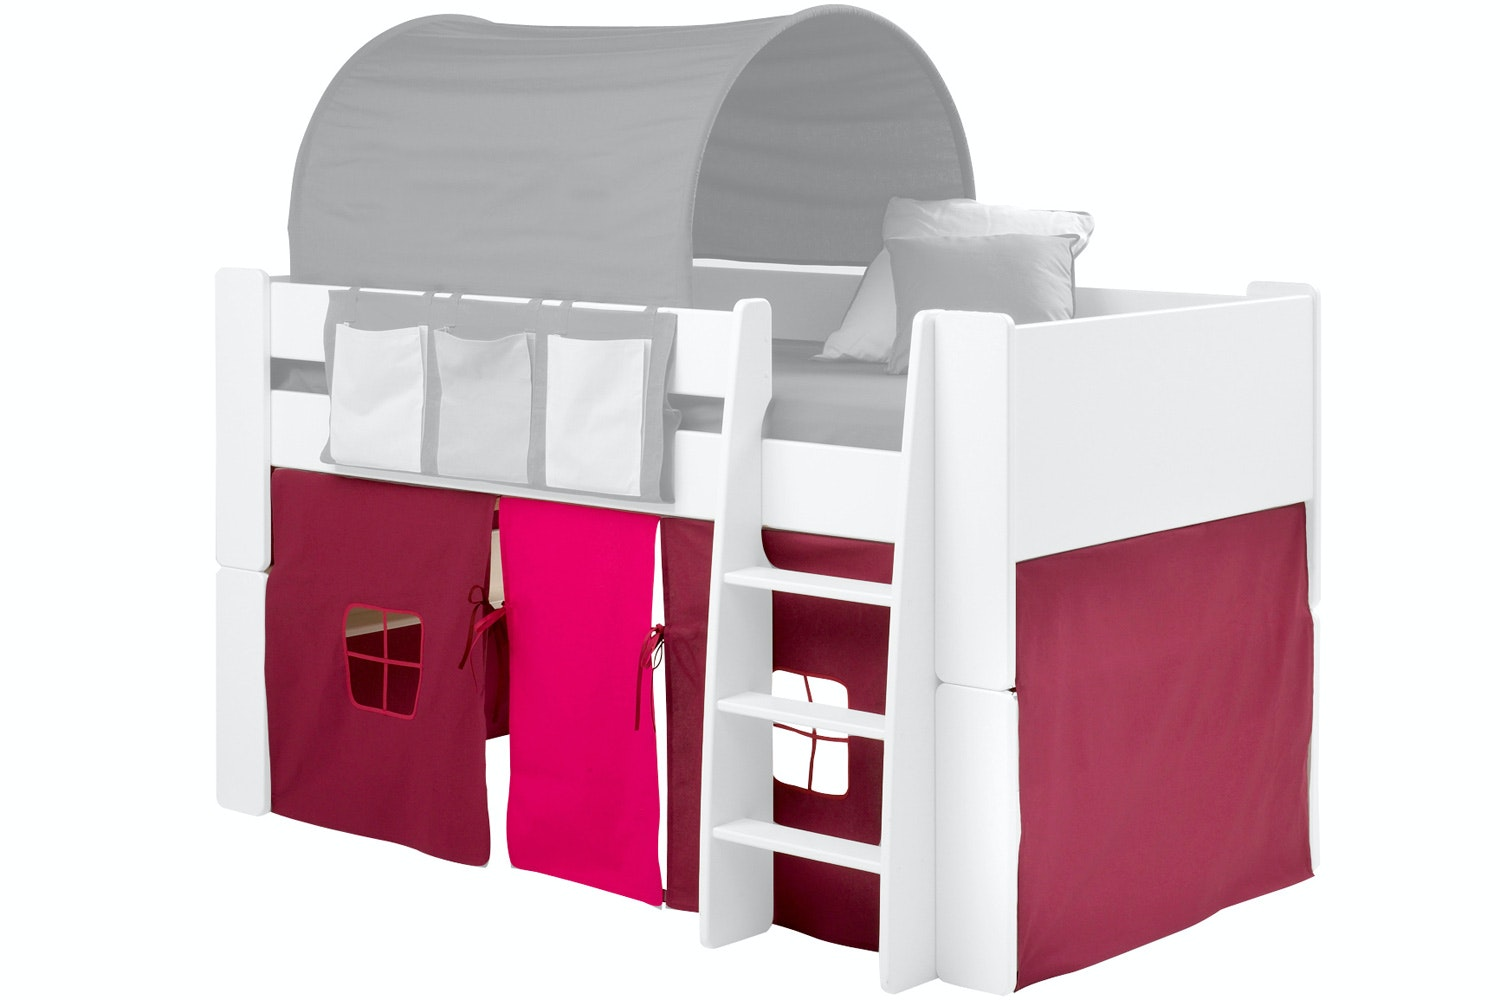 Popsicle Fabric Tent for Midsleeper Bed Purple